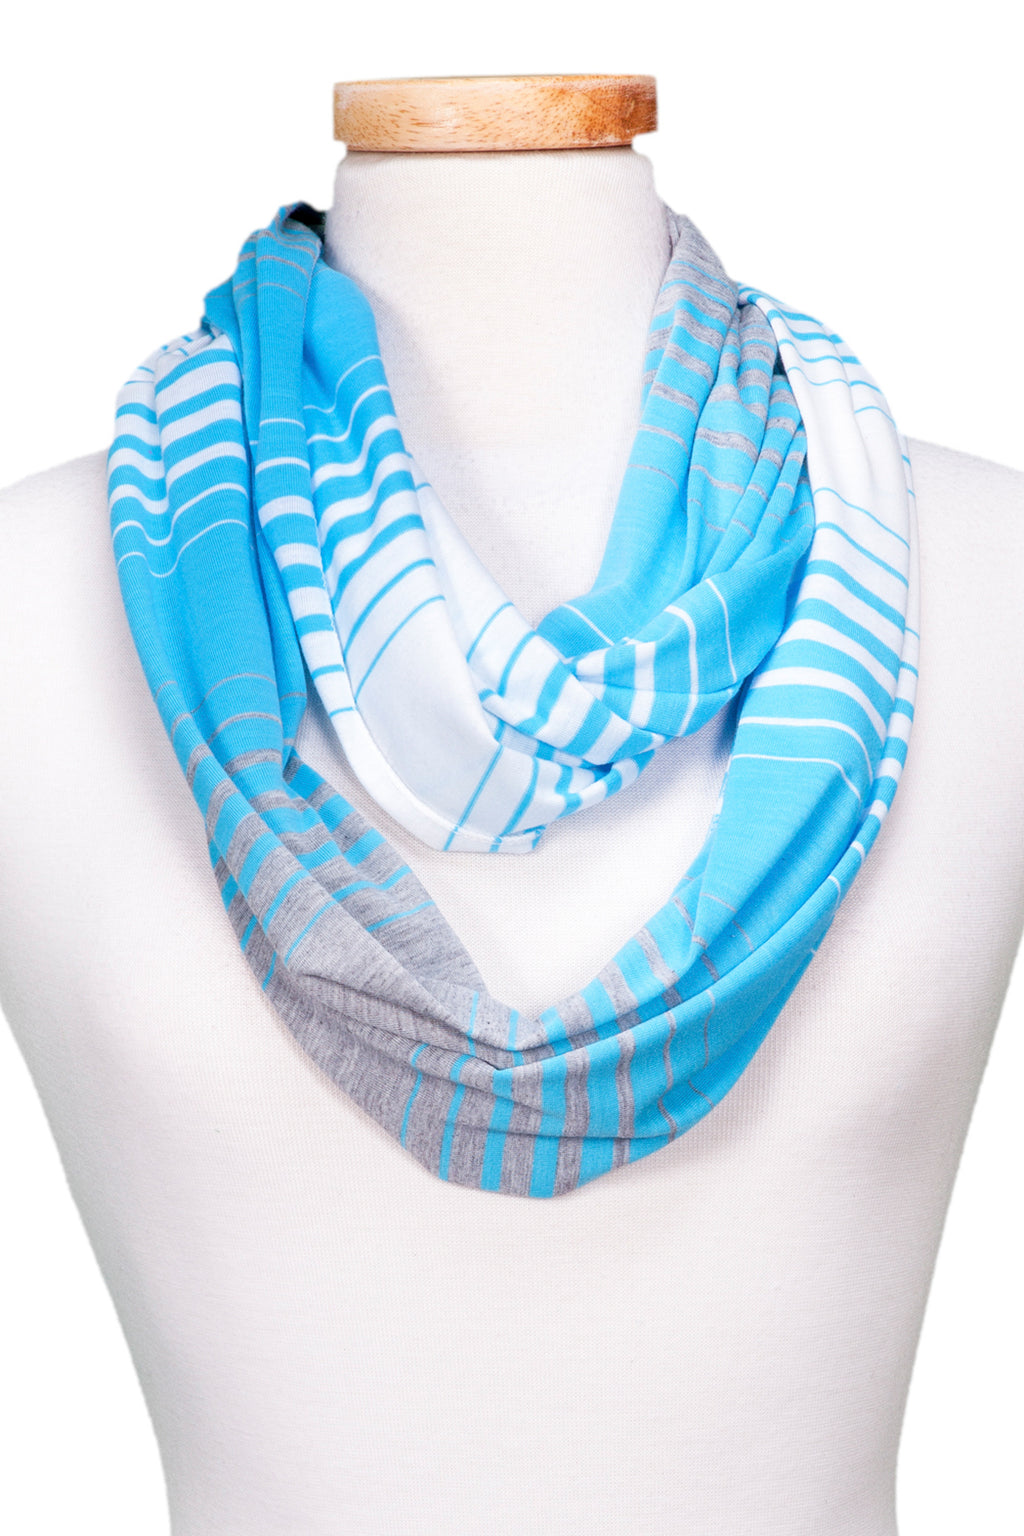 wholesale  Multi-Stripe Jersey Infinity - Turquoise